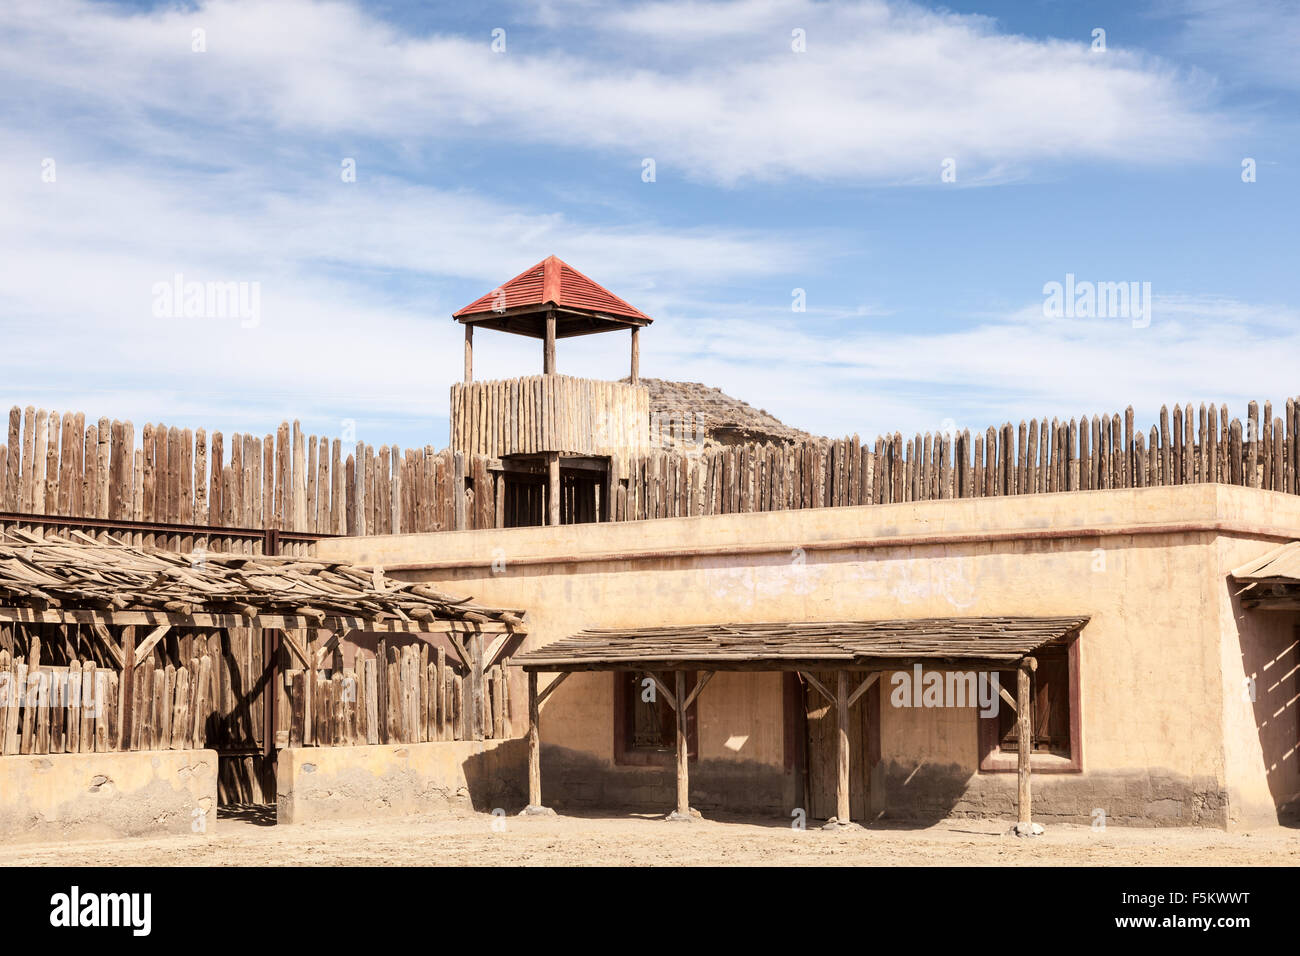 Historic wooden american wild west fort stock photo for Old wooden forts